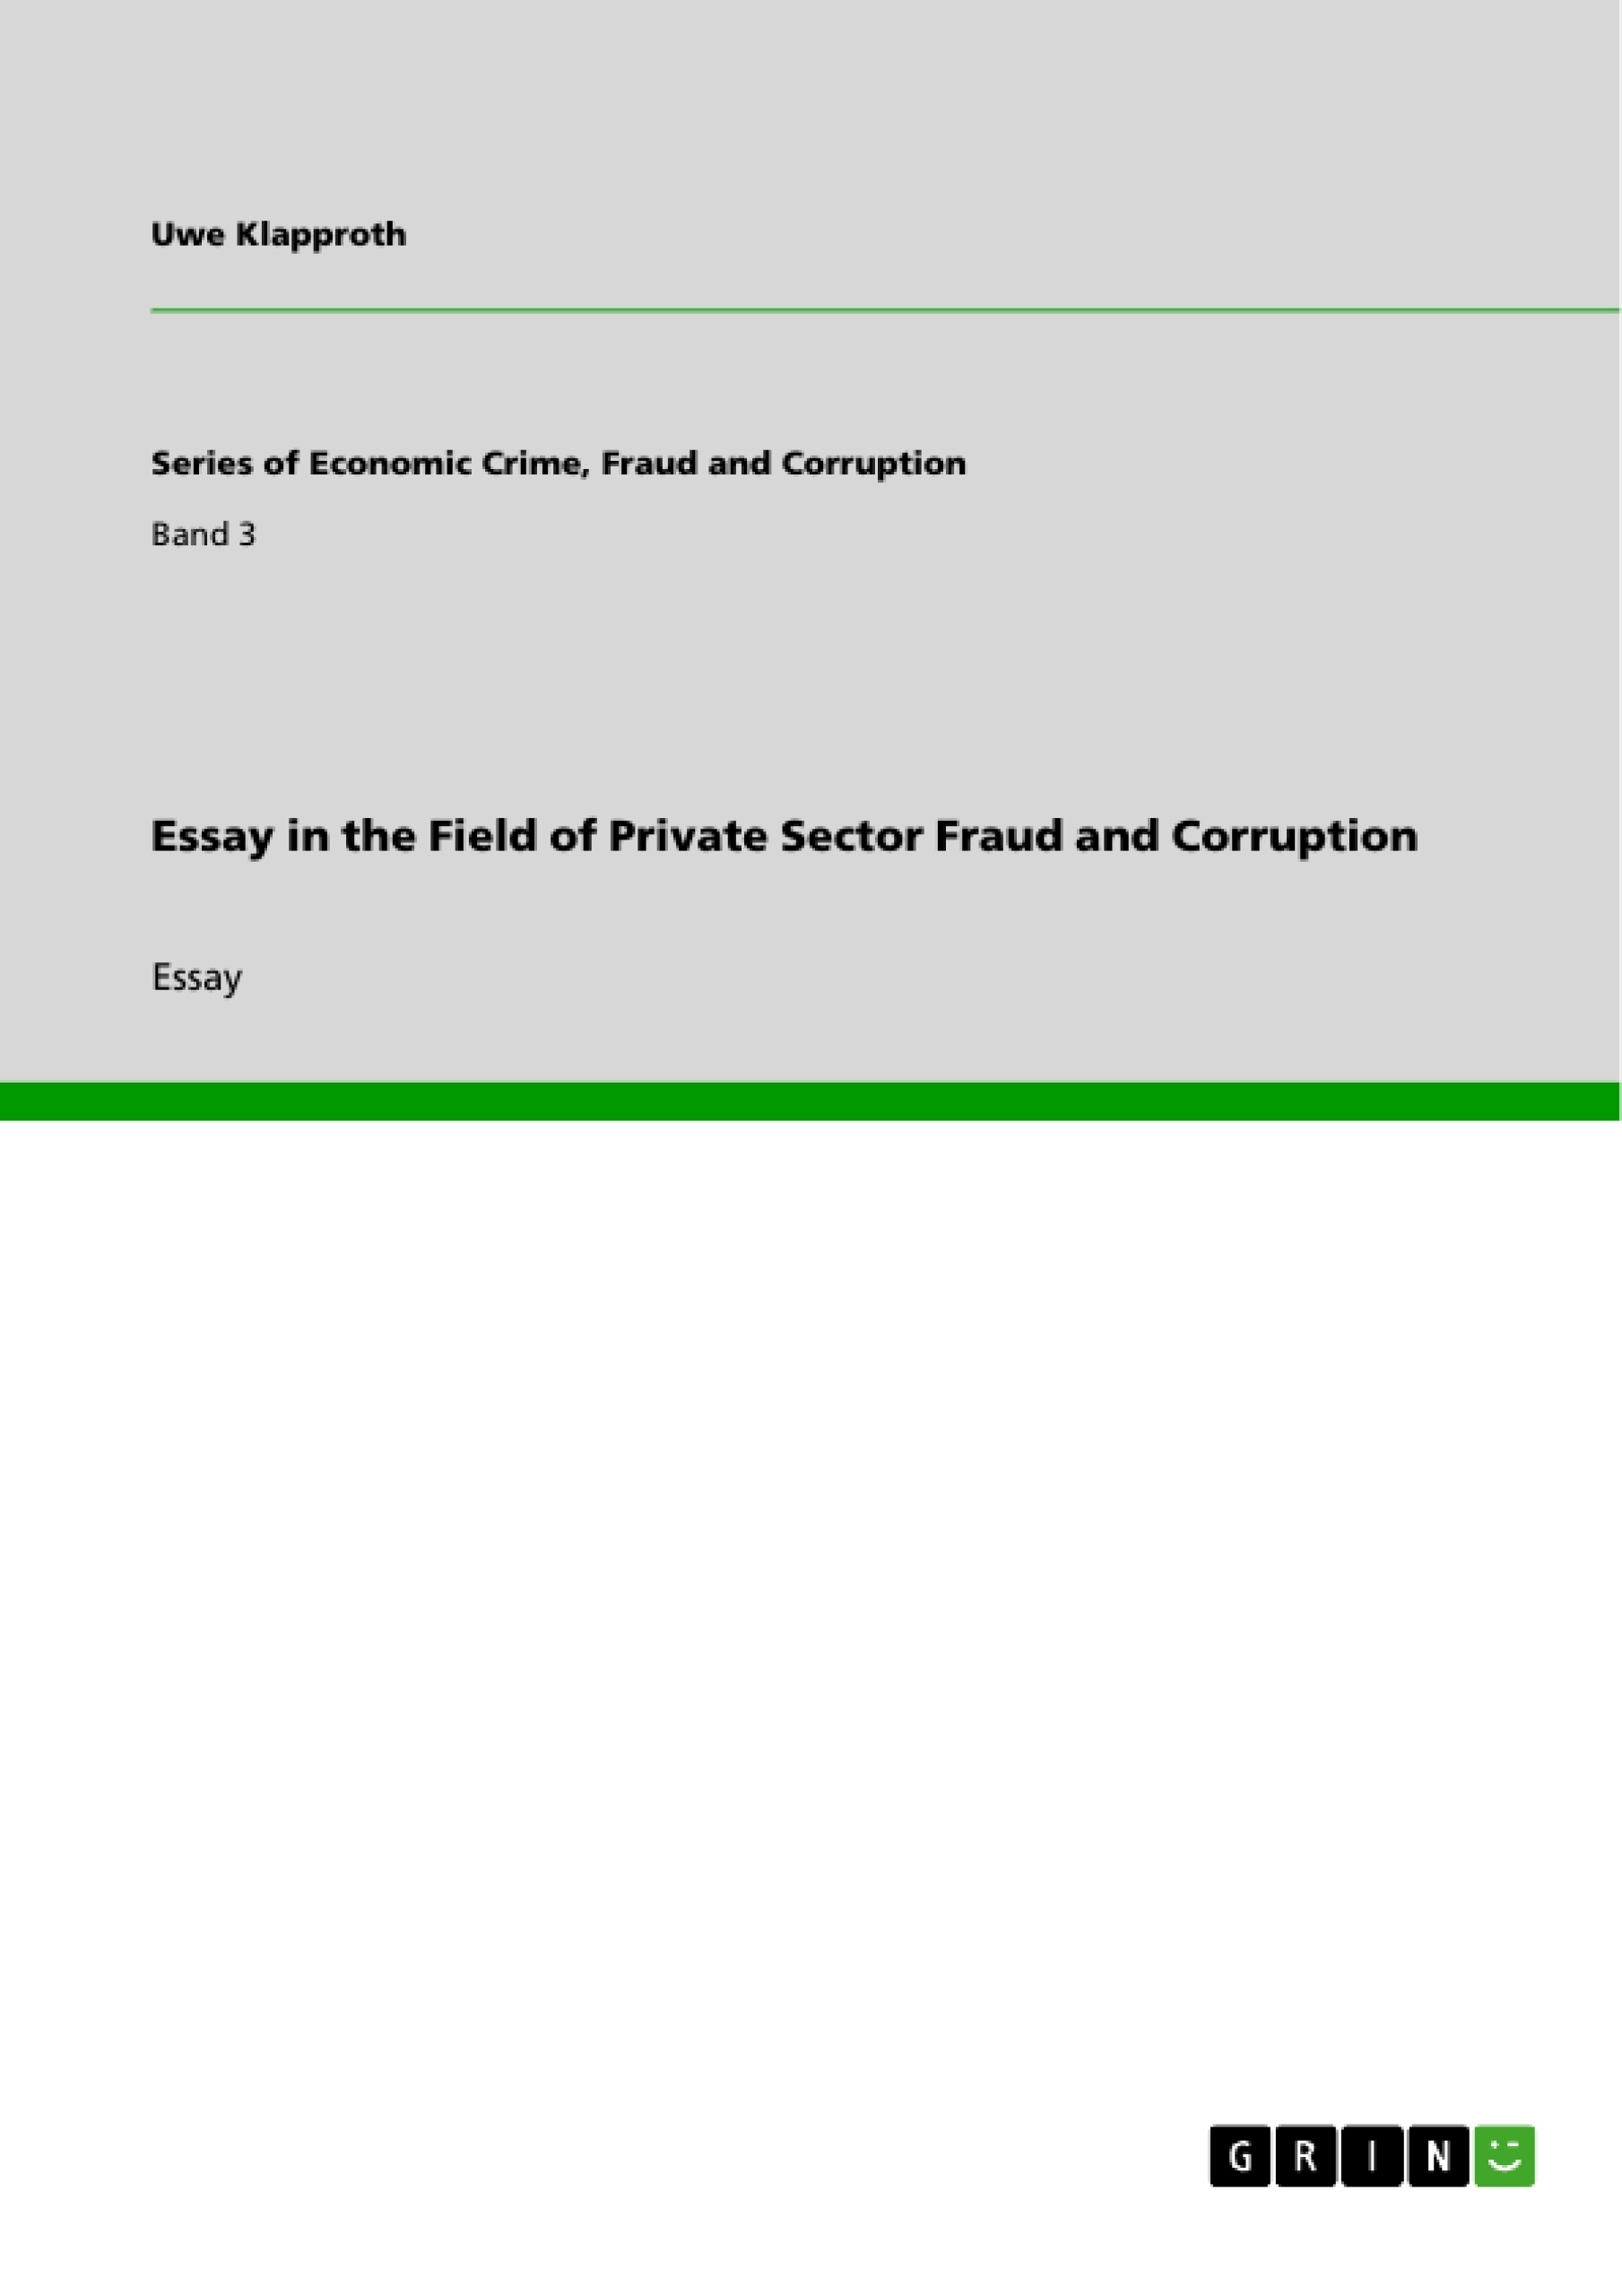 Title: Essay in the Field of Private Sector Fraud and Corruption